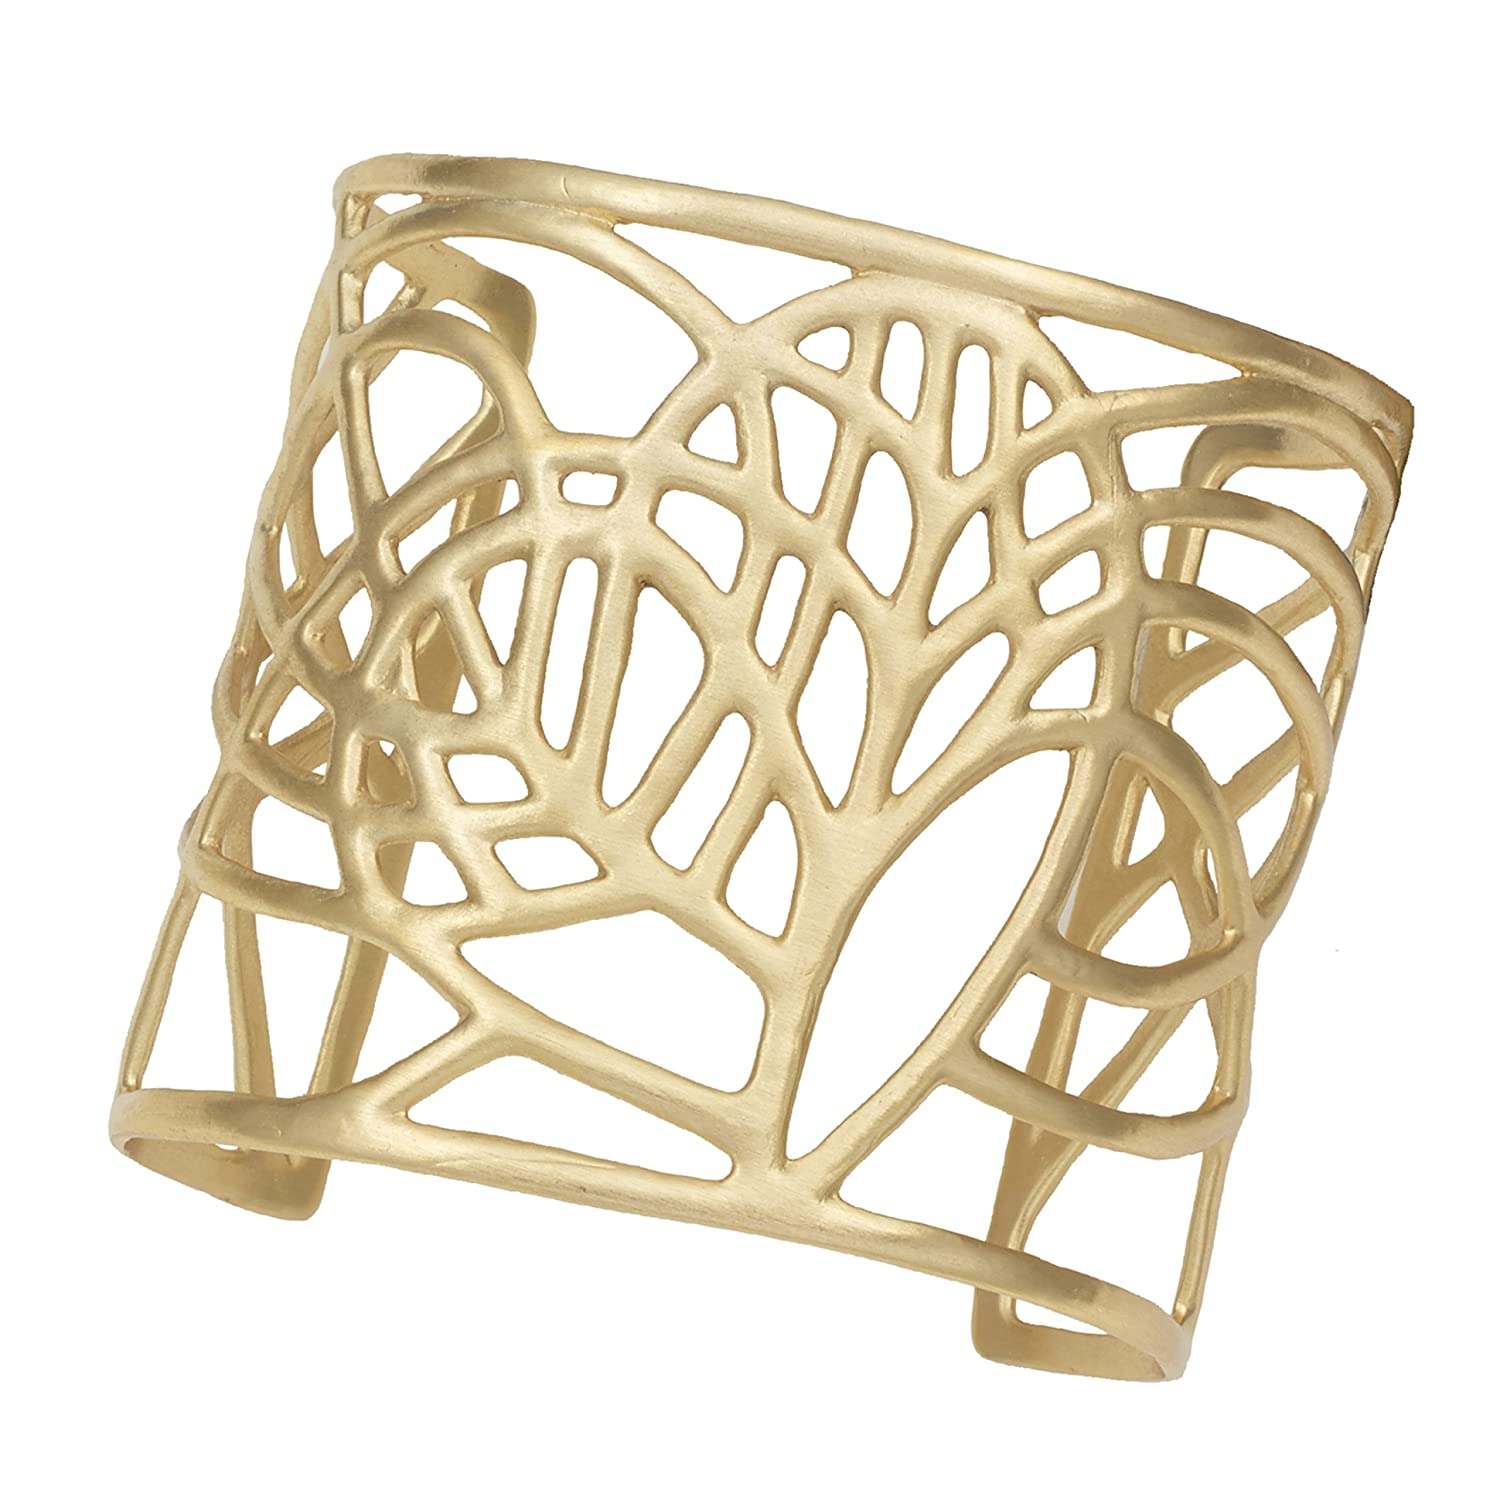 Tree of Life Heart Cuff Bracelet (24k Gold-Plated) by Mercedes Shaffer